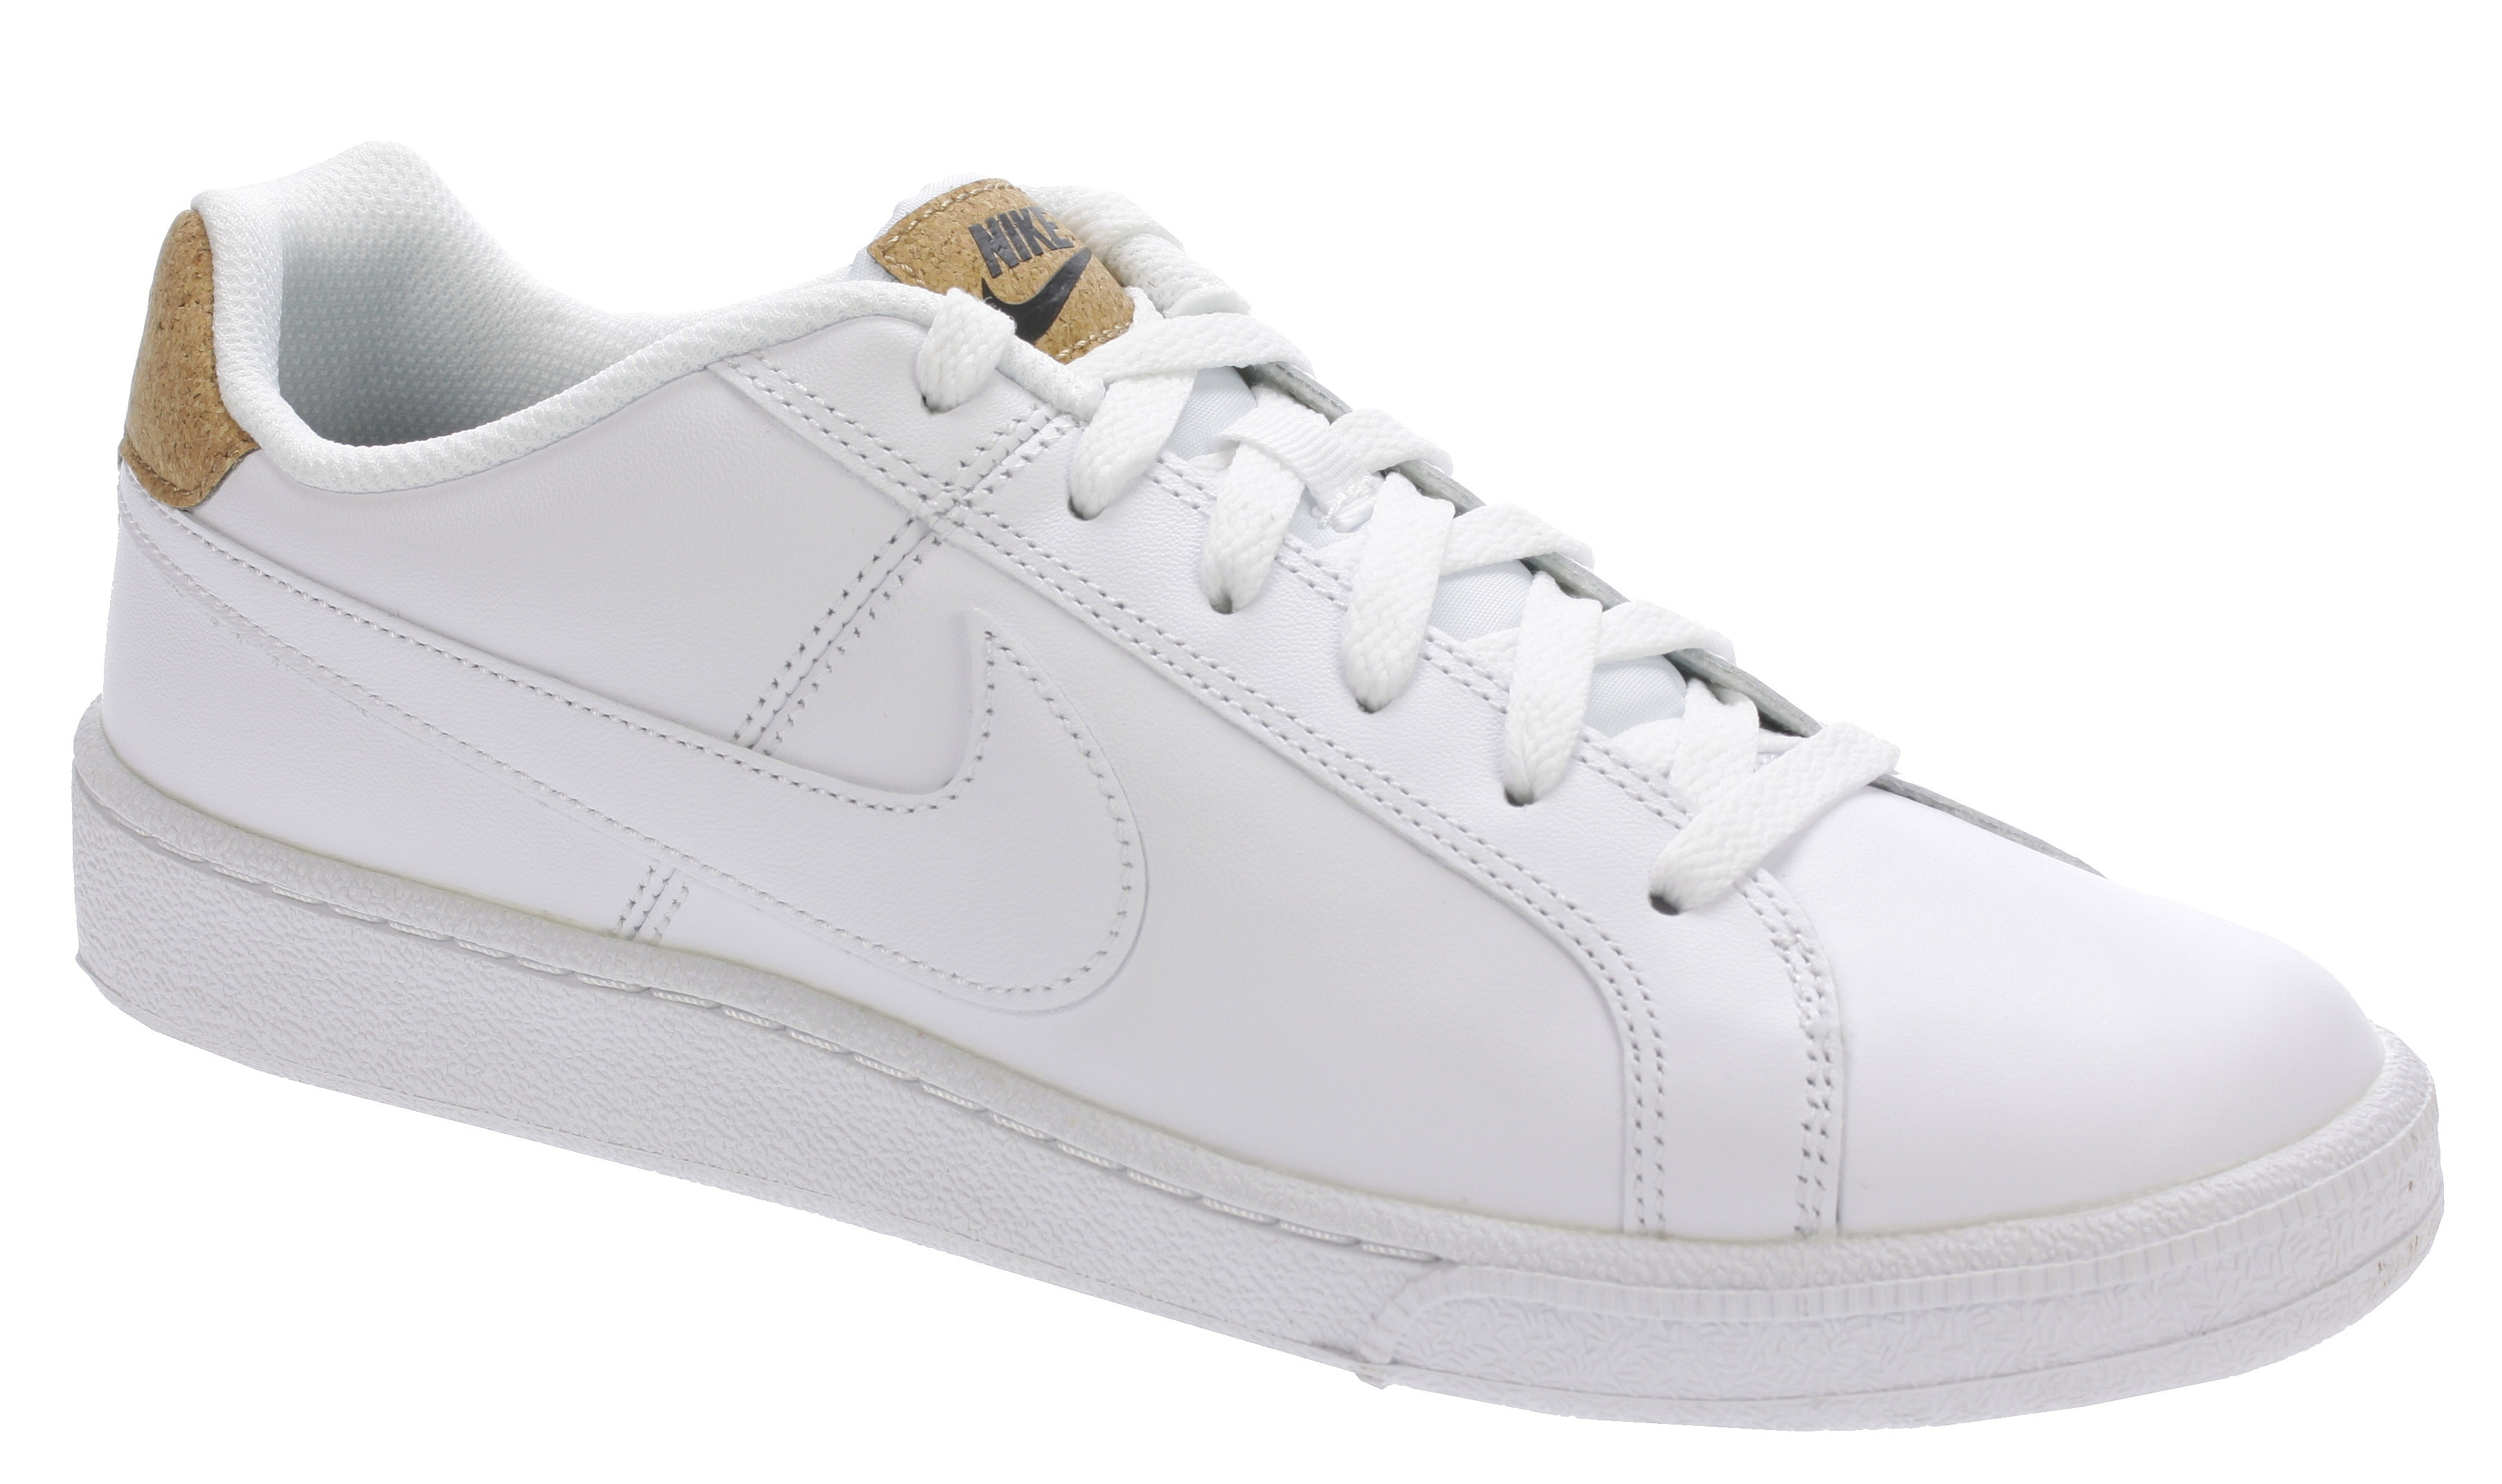 Pictures Of White Nike Shoes